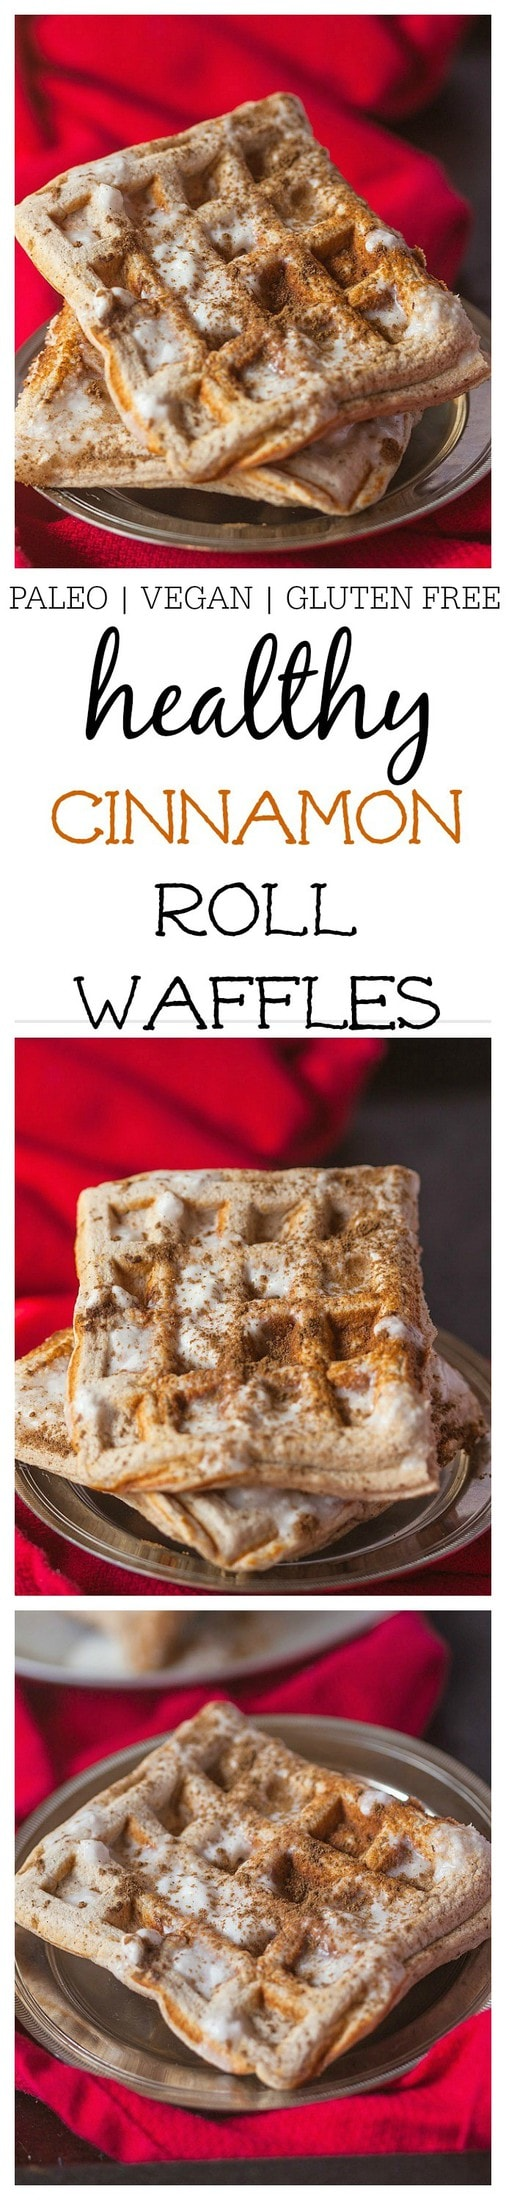 Healthy Cinnamon Roll Waffles- Healthy Cinnamon Roll Waffles which taste like a fresh, hot cinnamon roll minus the nasties! Sugar free, high protein and options for those following a paleo, gluten free or vegan dietary lifestyle! @thebigmansworld - thebigmansworld.com